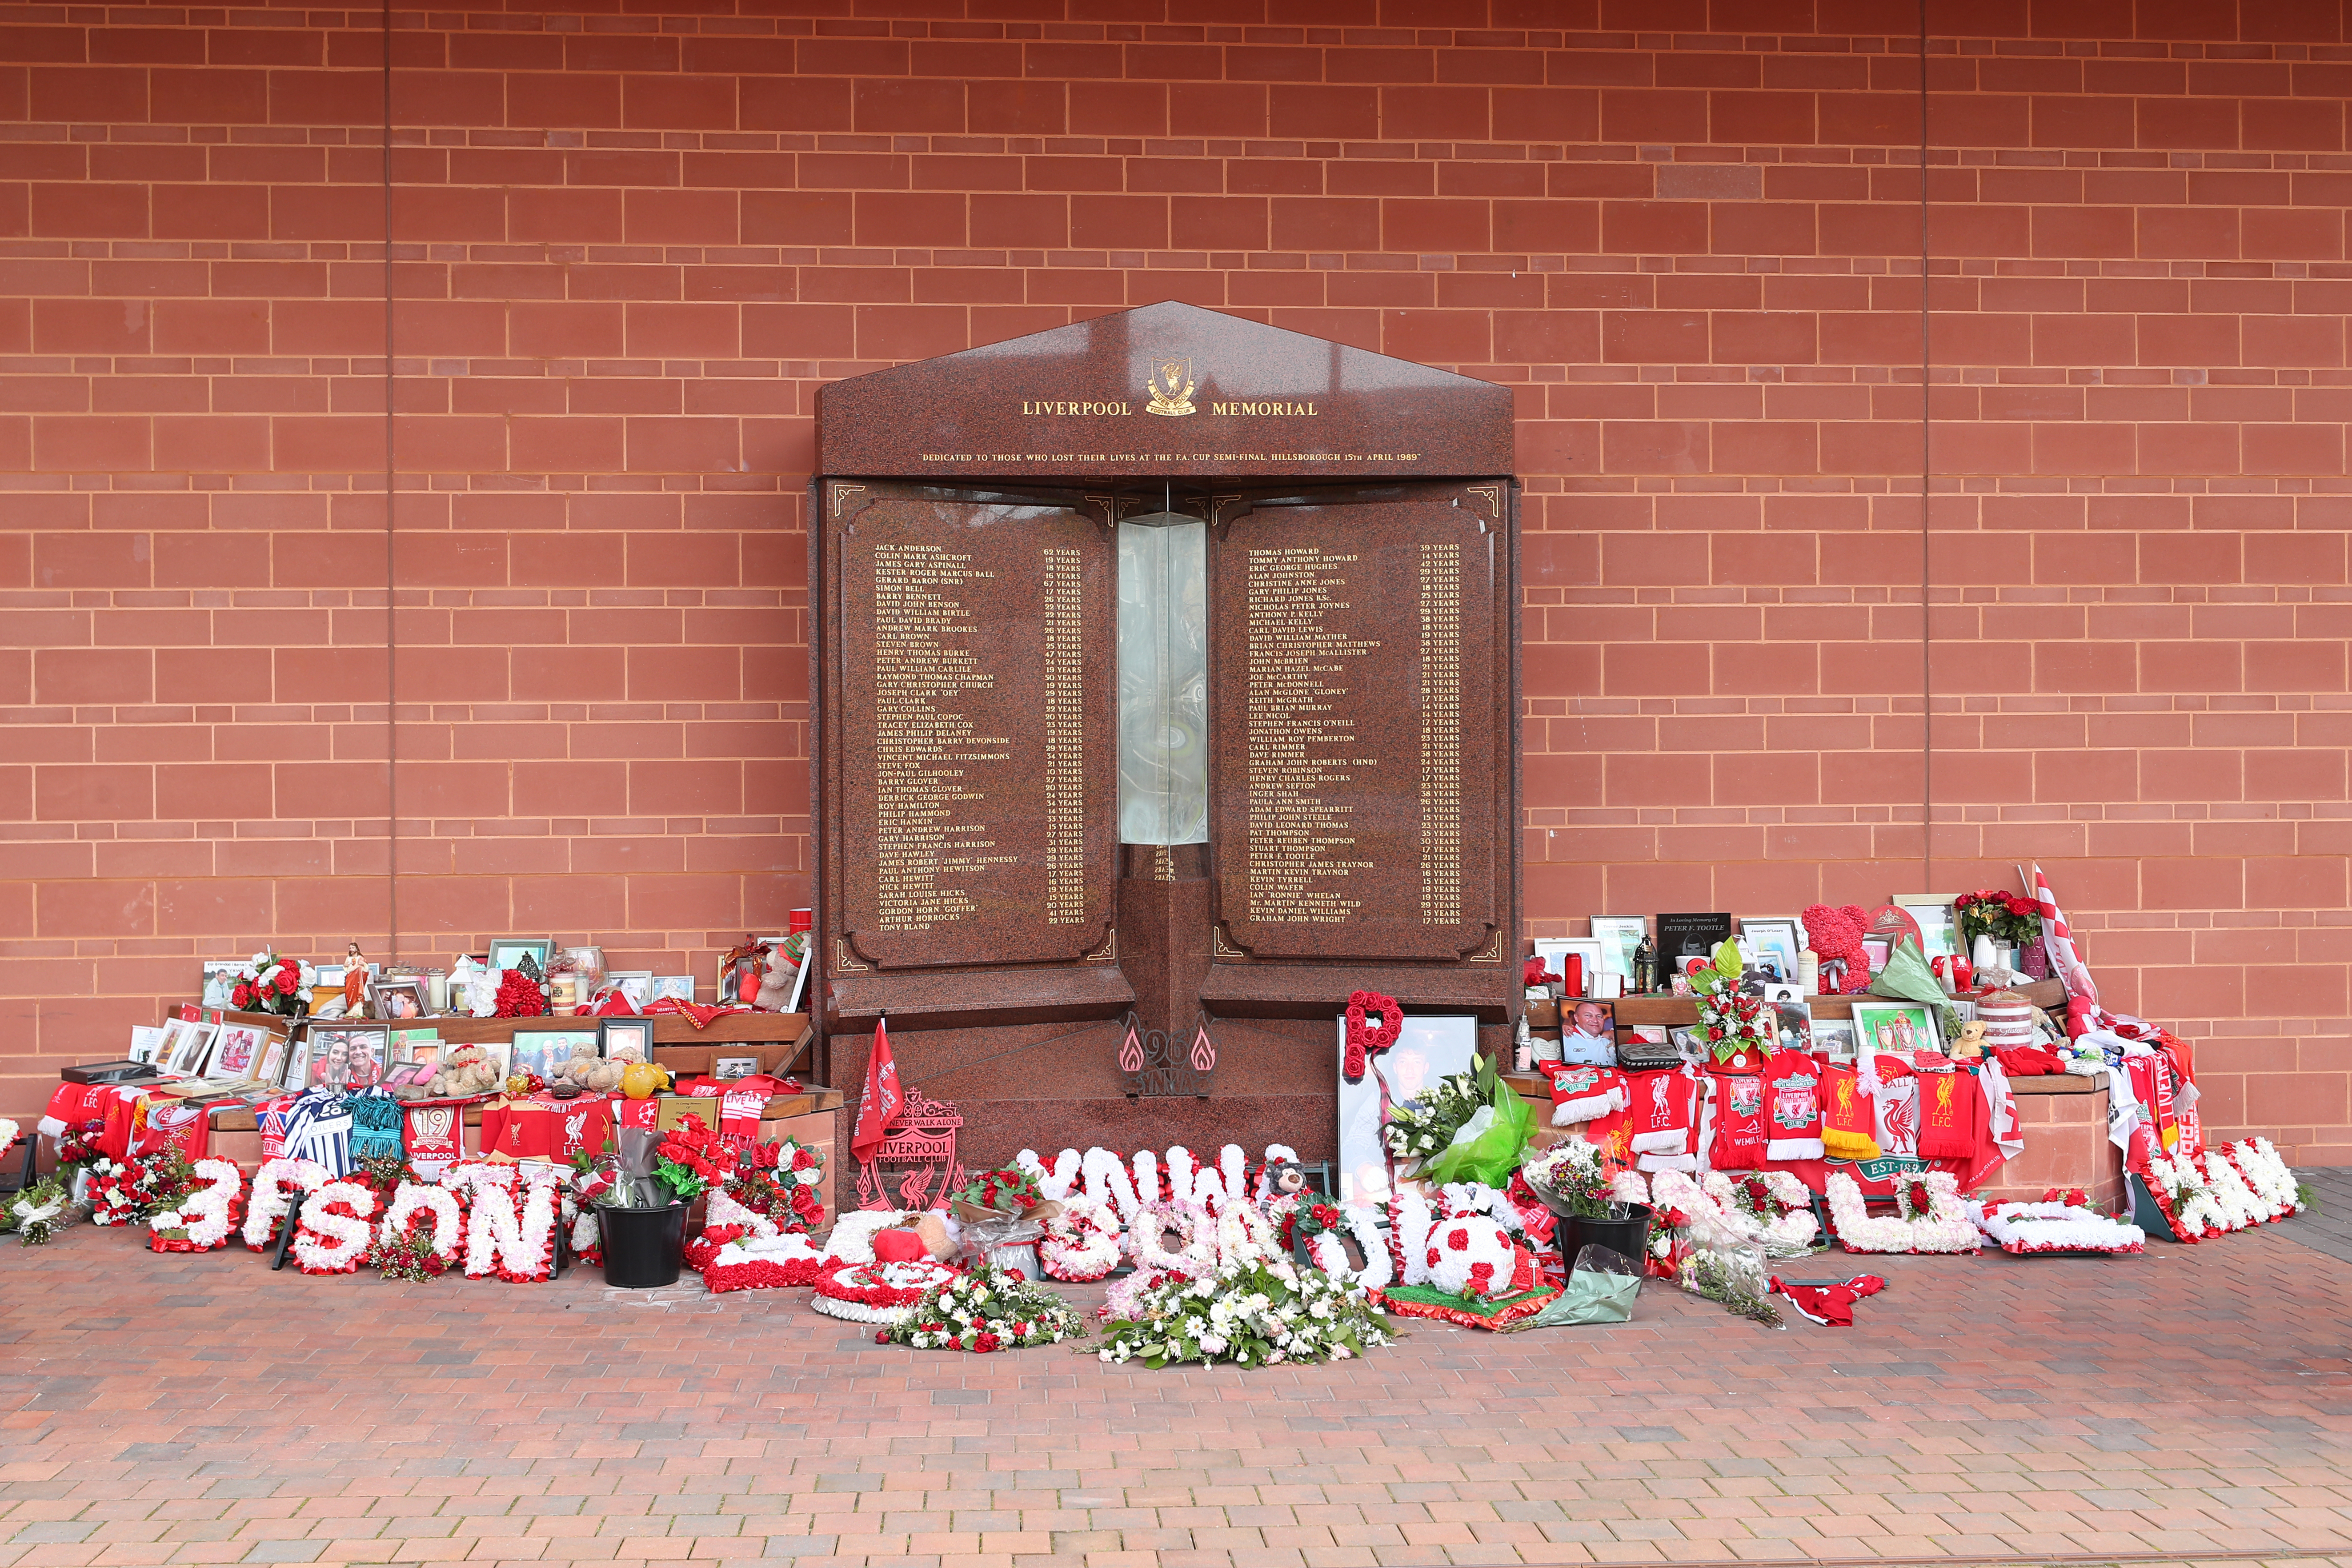 <p>Flowers and tributes left at the Hillsborough Memorial outside Anfield stadium, Liverpool, following the collapse of the Hillsborough trial. Picture date: Wednesday May 26, 2021. The judge at the Nightingale Court held at the Lowry in Salford, Greater Manchester, has ruled there is no case to answer in the trial of two retired police officers, Alan Foster and Donald Denton, and retired solicitor Peter Metcalf, who were all accused of perverting the course of justice following the Hillsborough disaster on April 15, 1989.</p>